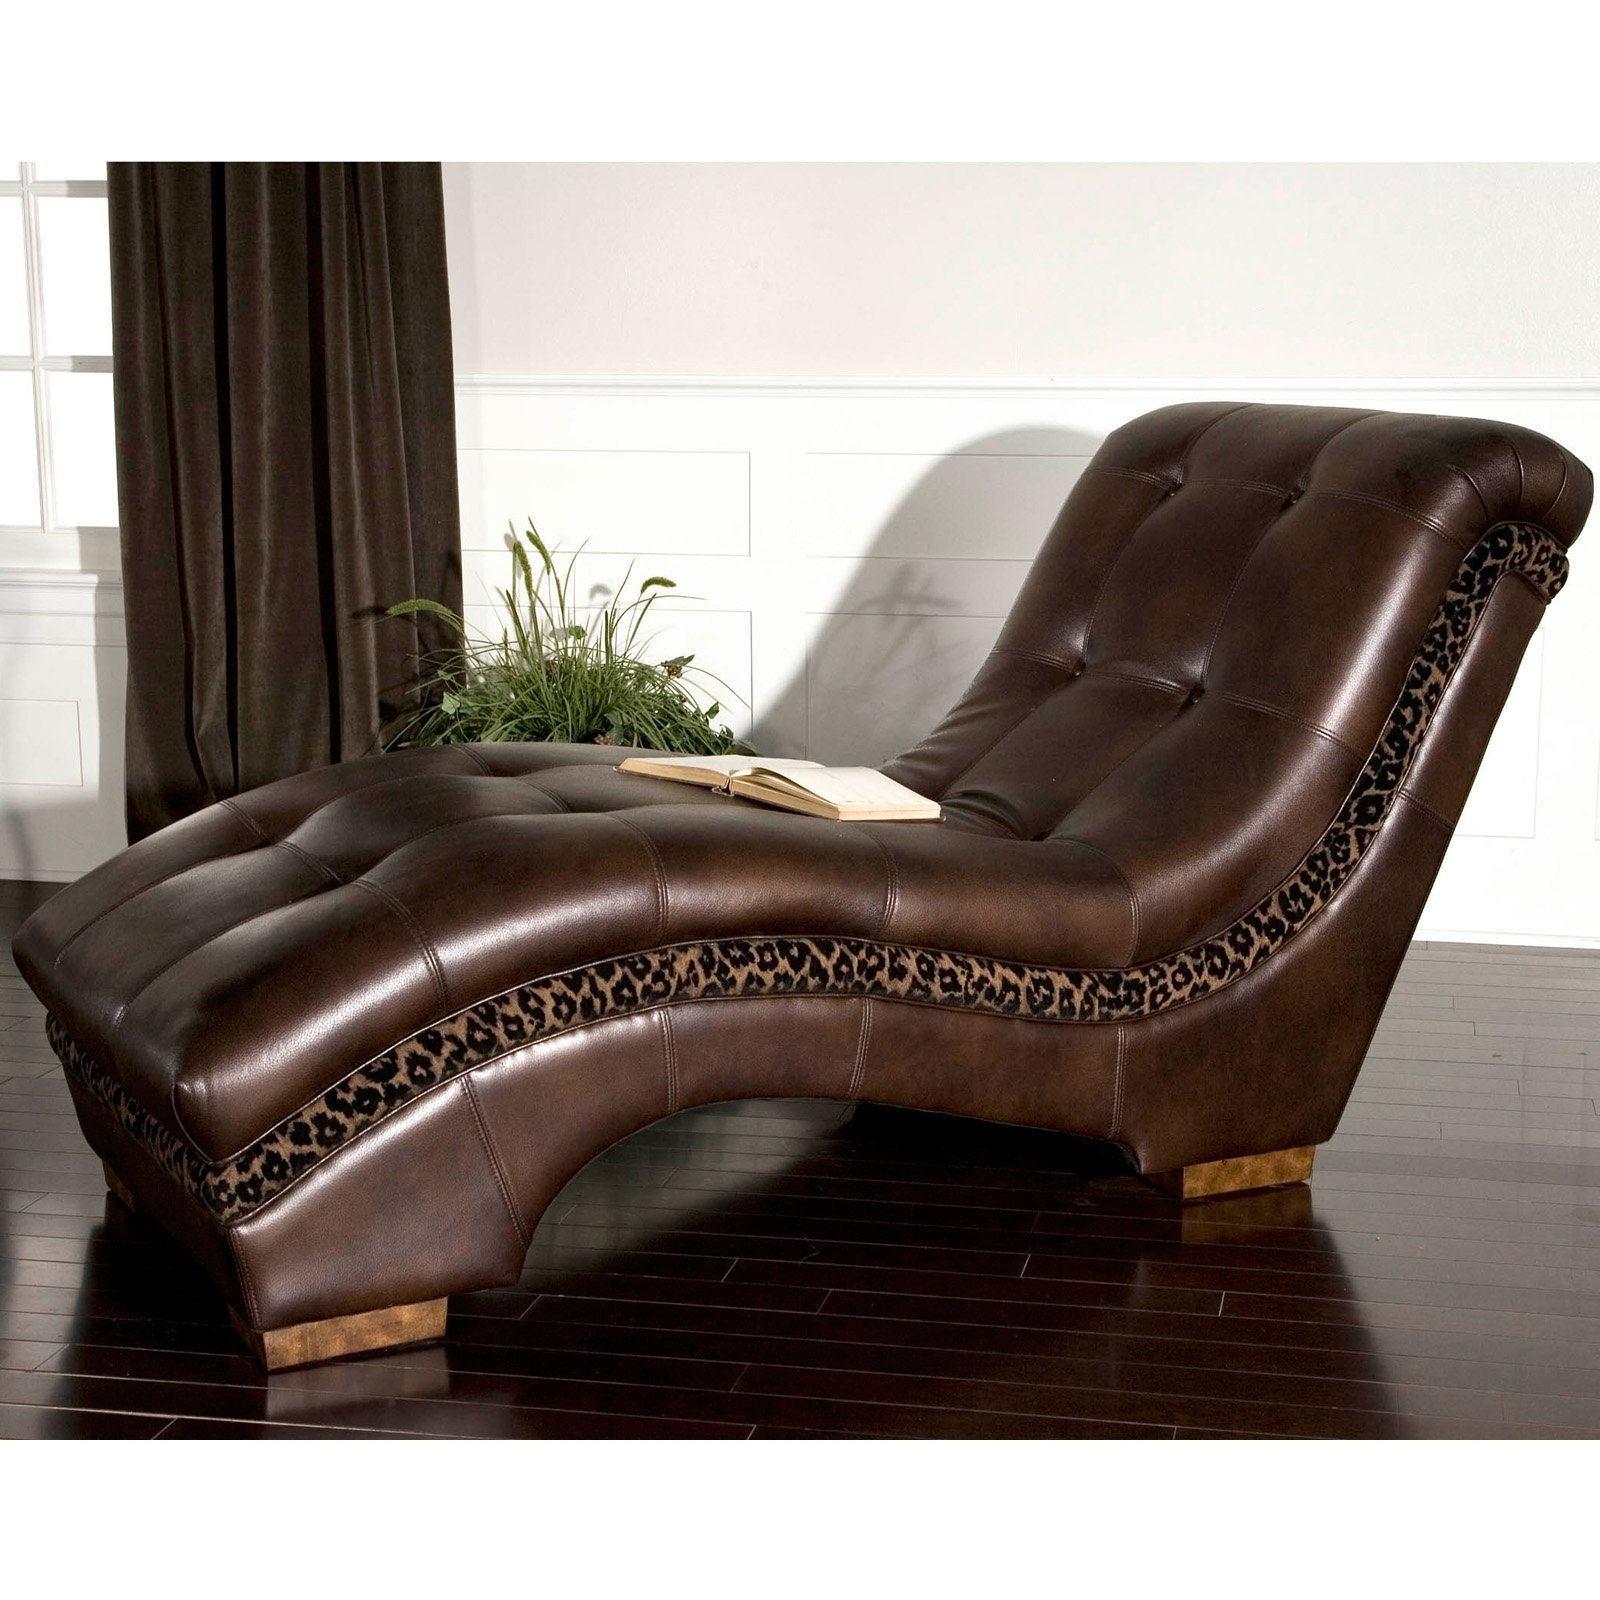 Zebra Print Chaise Lounge Chairs In Trendy Brown Chaise Lounge – Brown Zebra Print Chaise Lounge, Brown (Gallery 12 of 15)